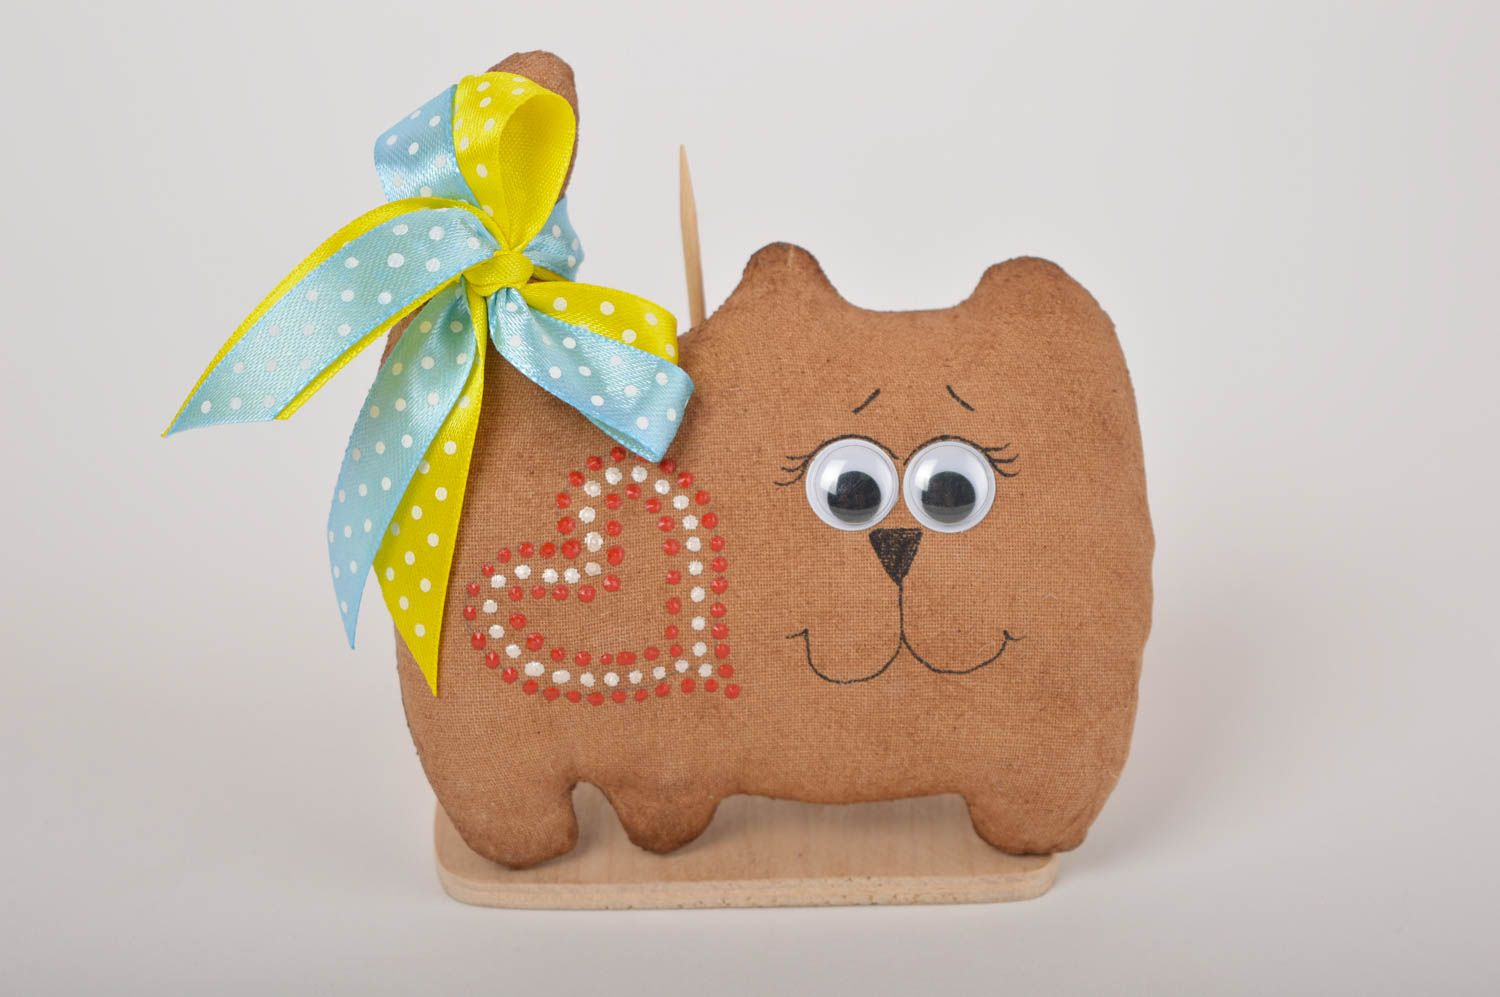 Handmade home decor fridge magnet soft toy animal toy for decorative use only photo 5